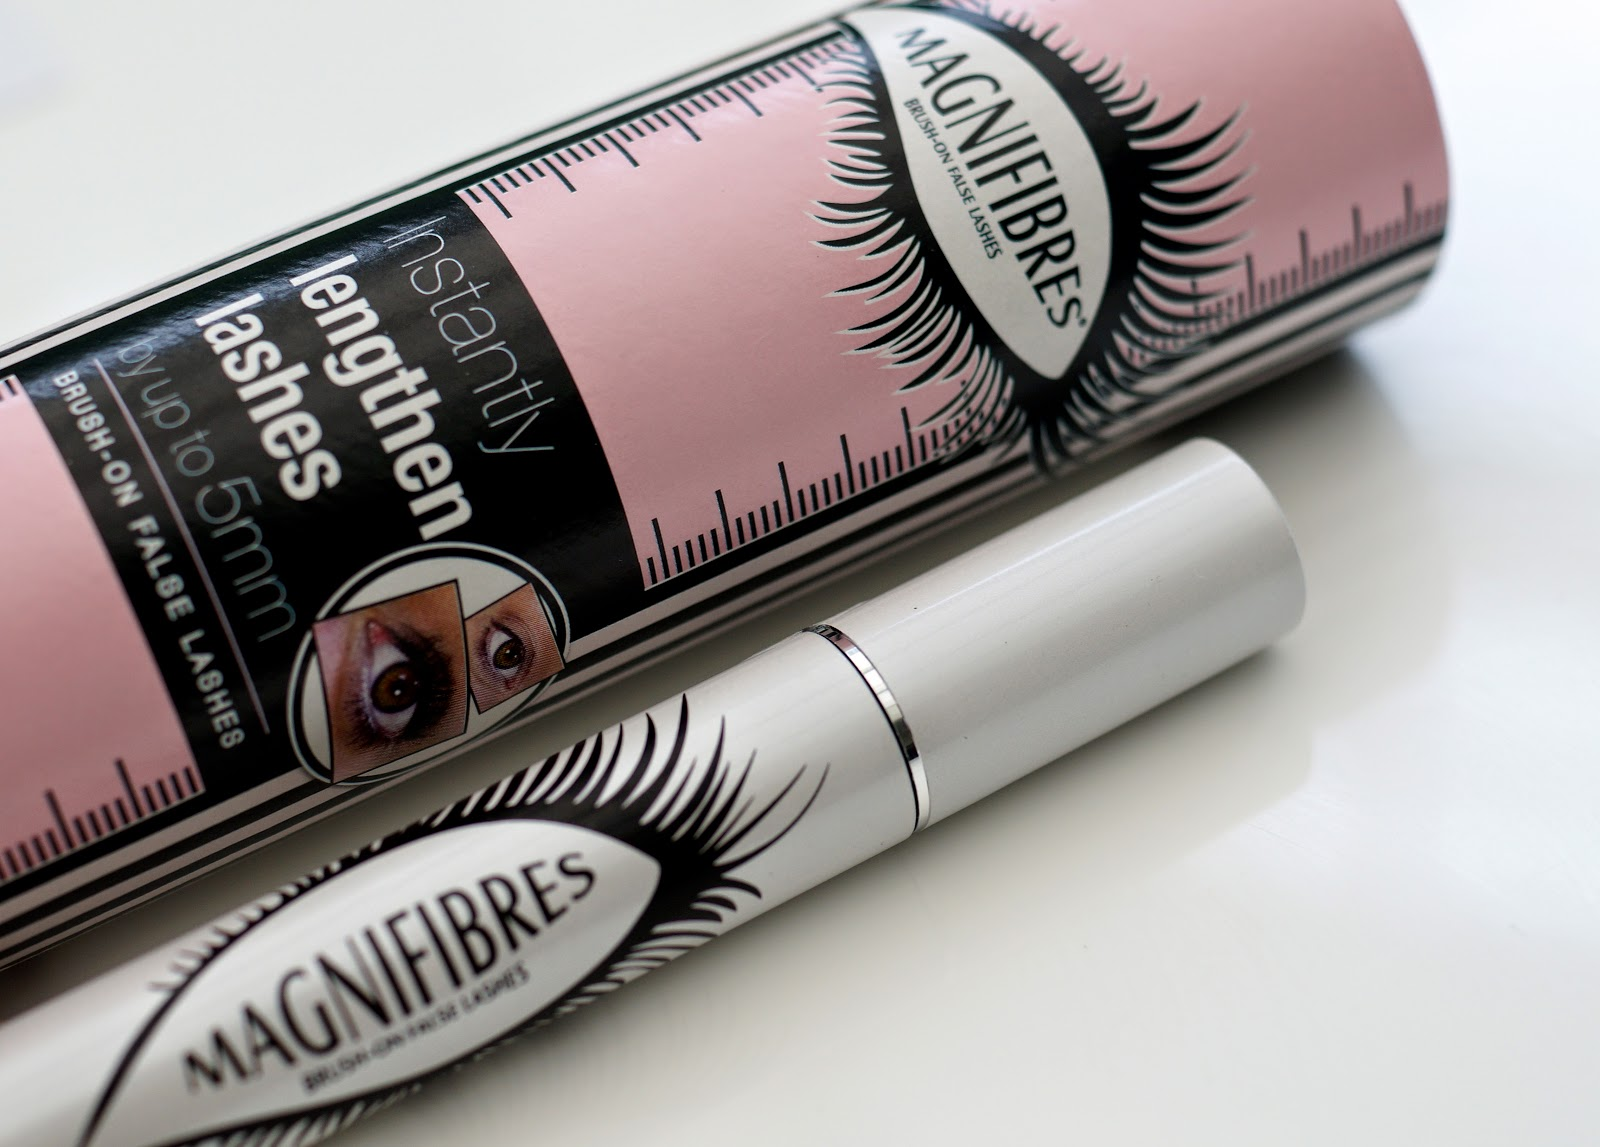 Magnifibres Brush-on False Lashes review